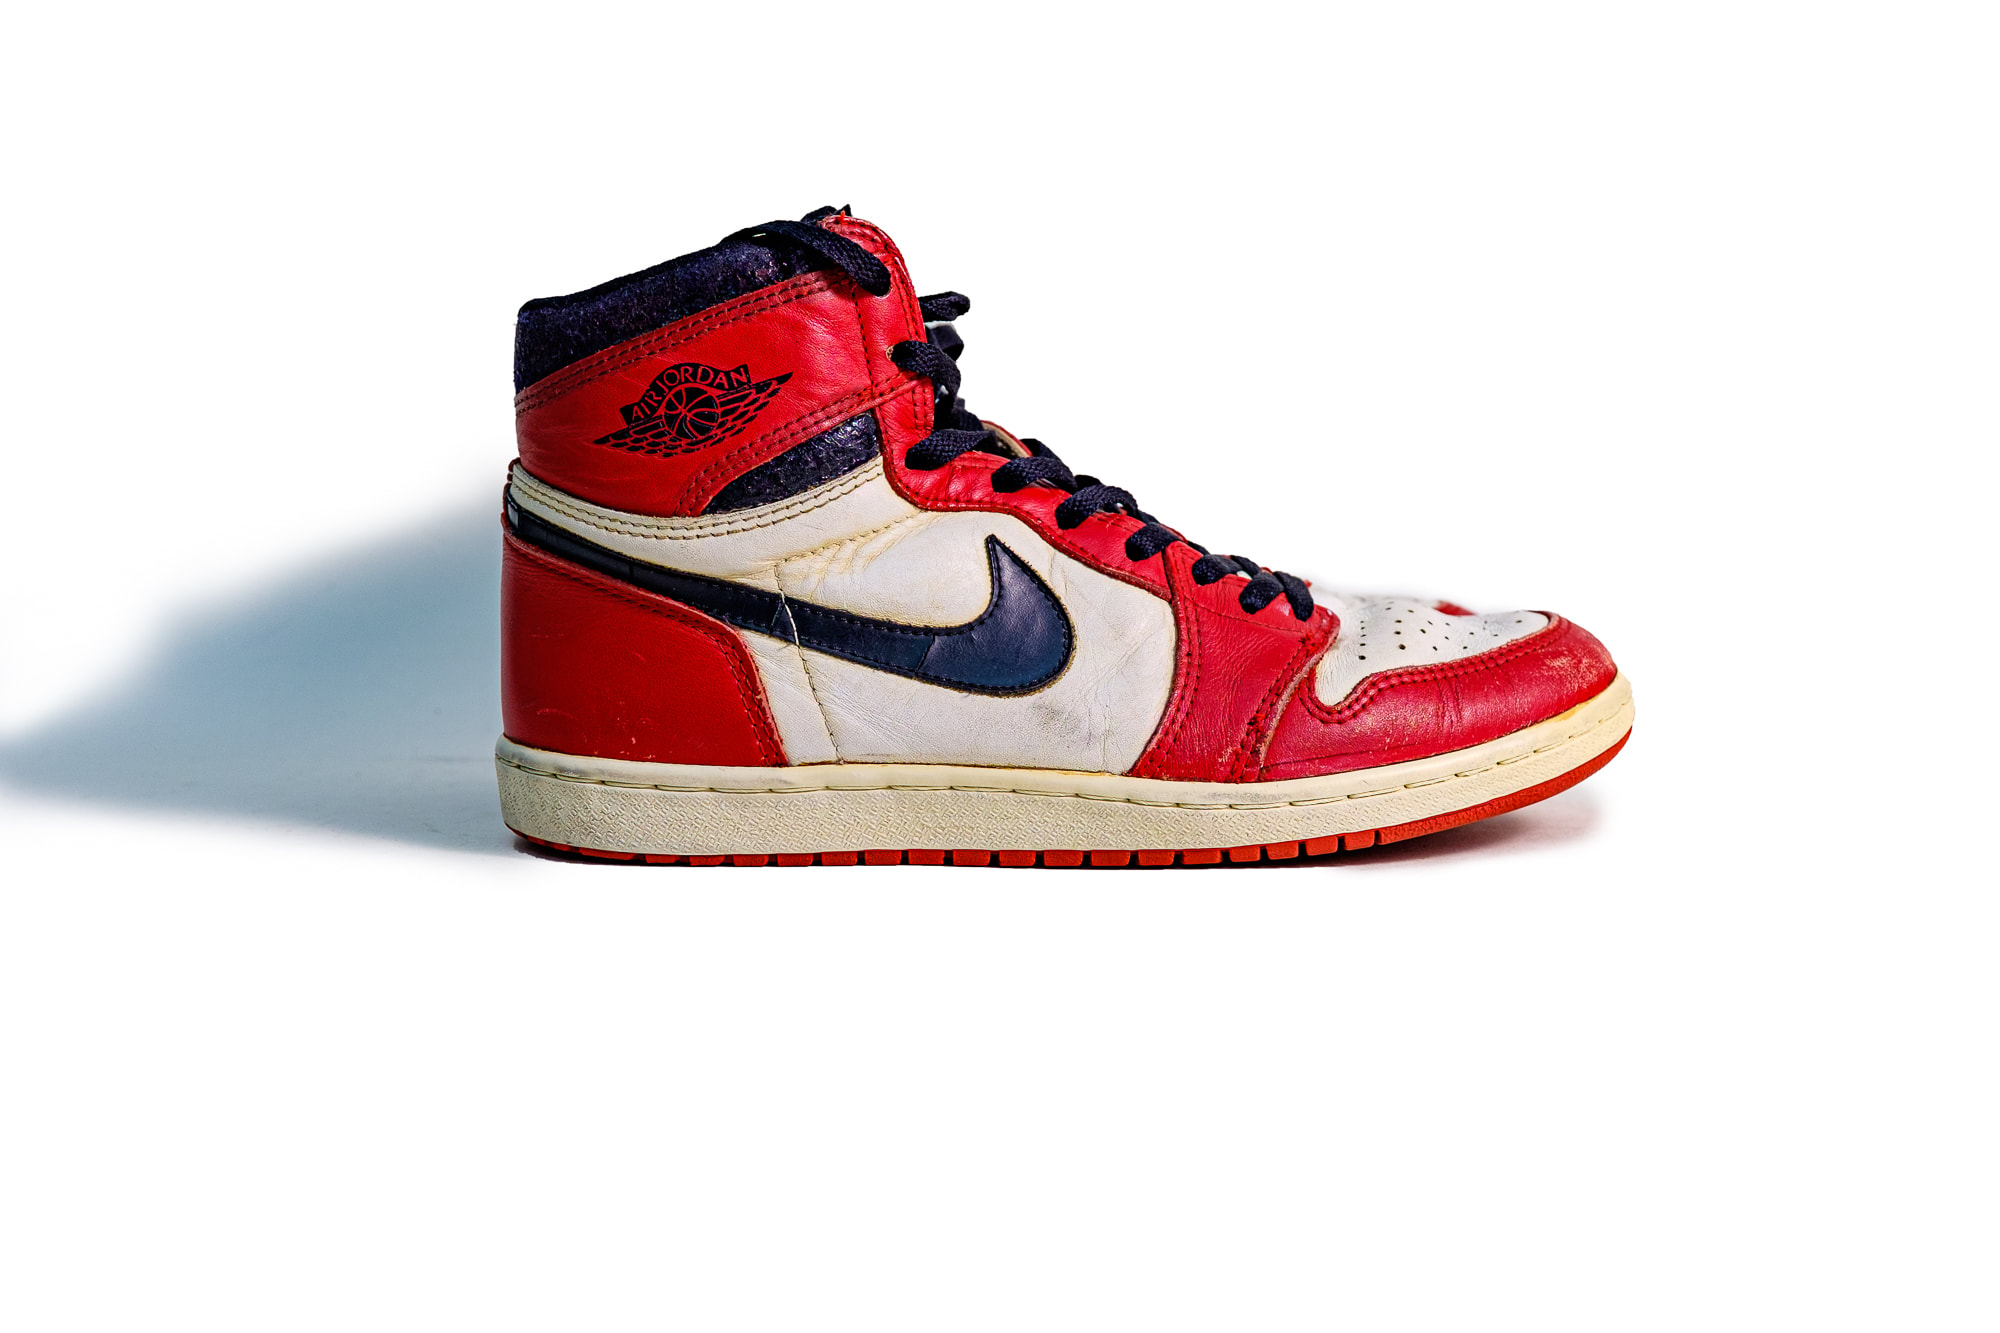 10.5 US - OG Nike Air Jordan 1 Chicago Red White 1985